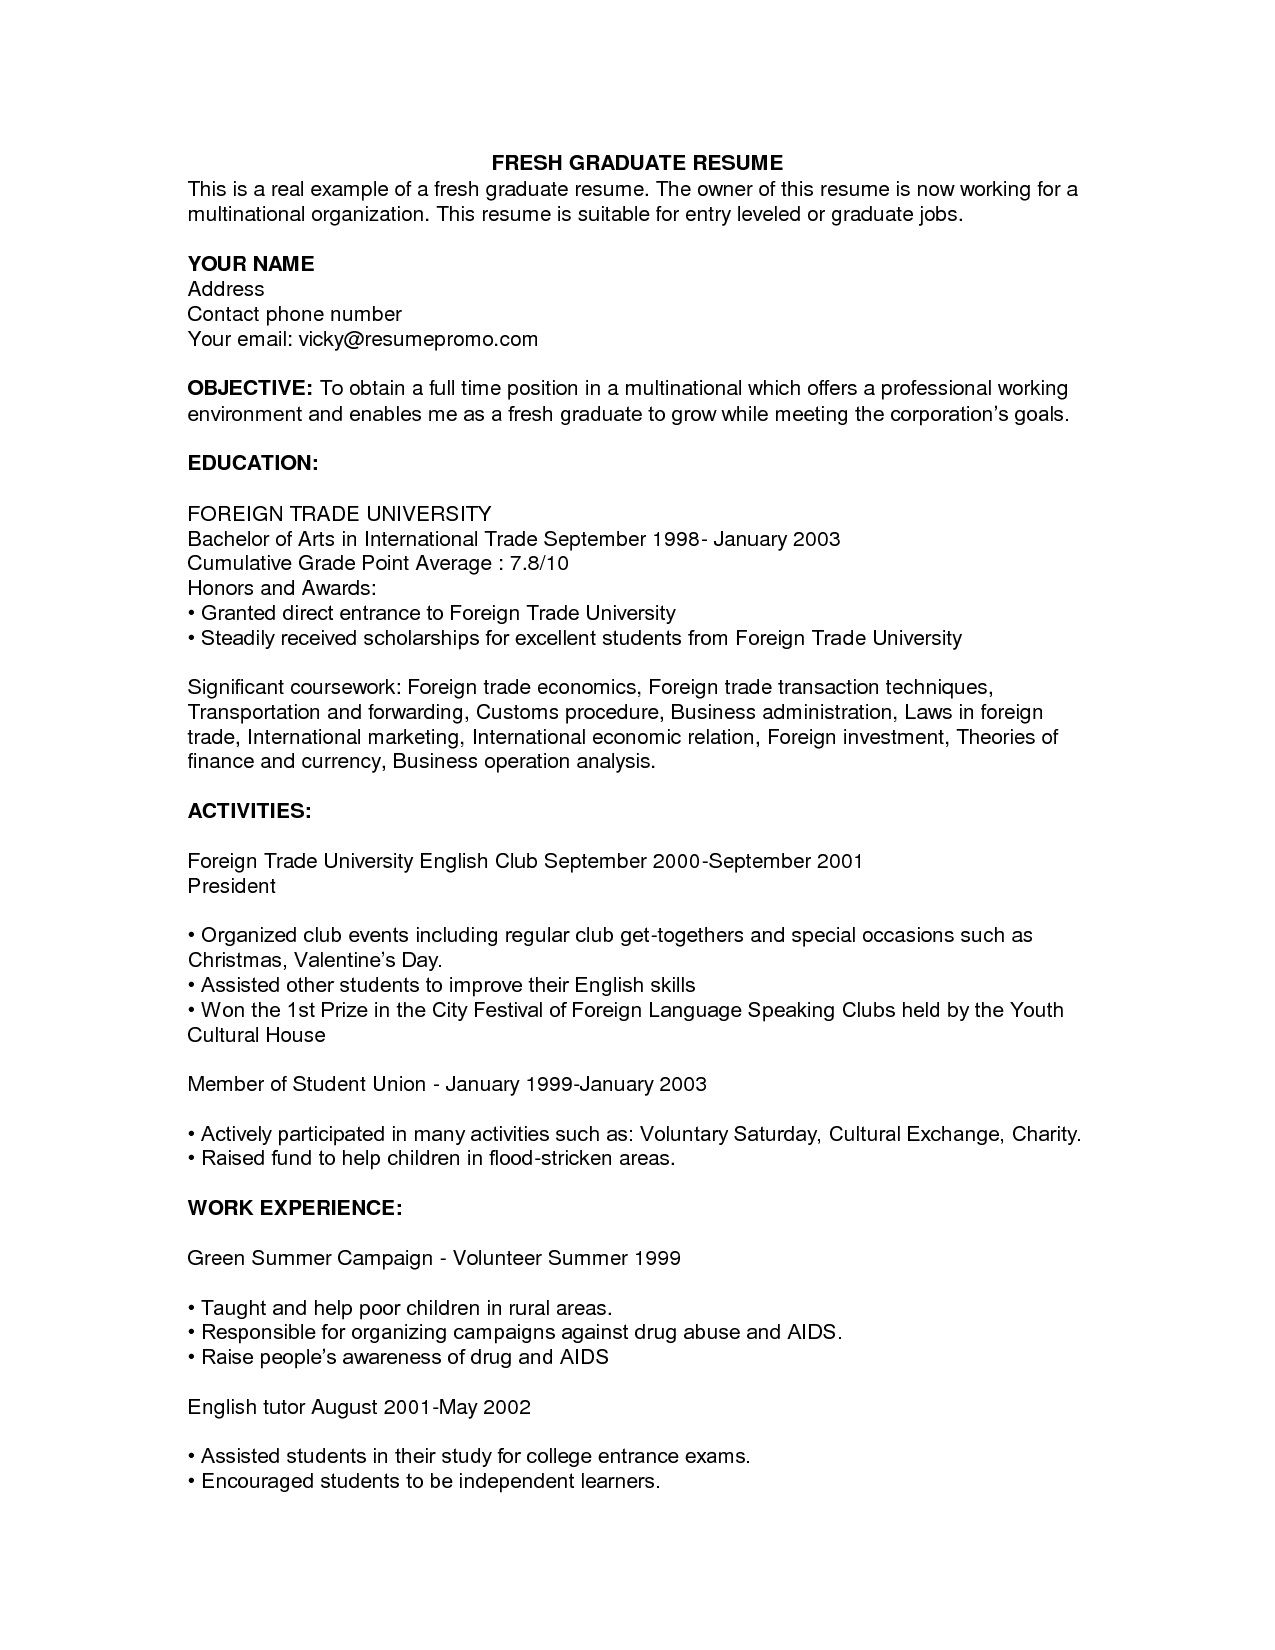 Resume Definition Job Example Of Resume For Fresh Graduate  Httpjobresumesample